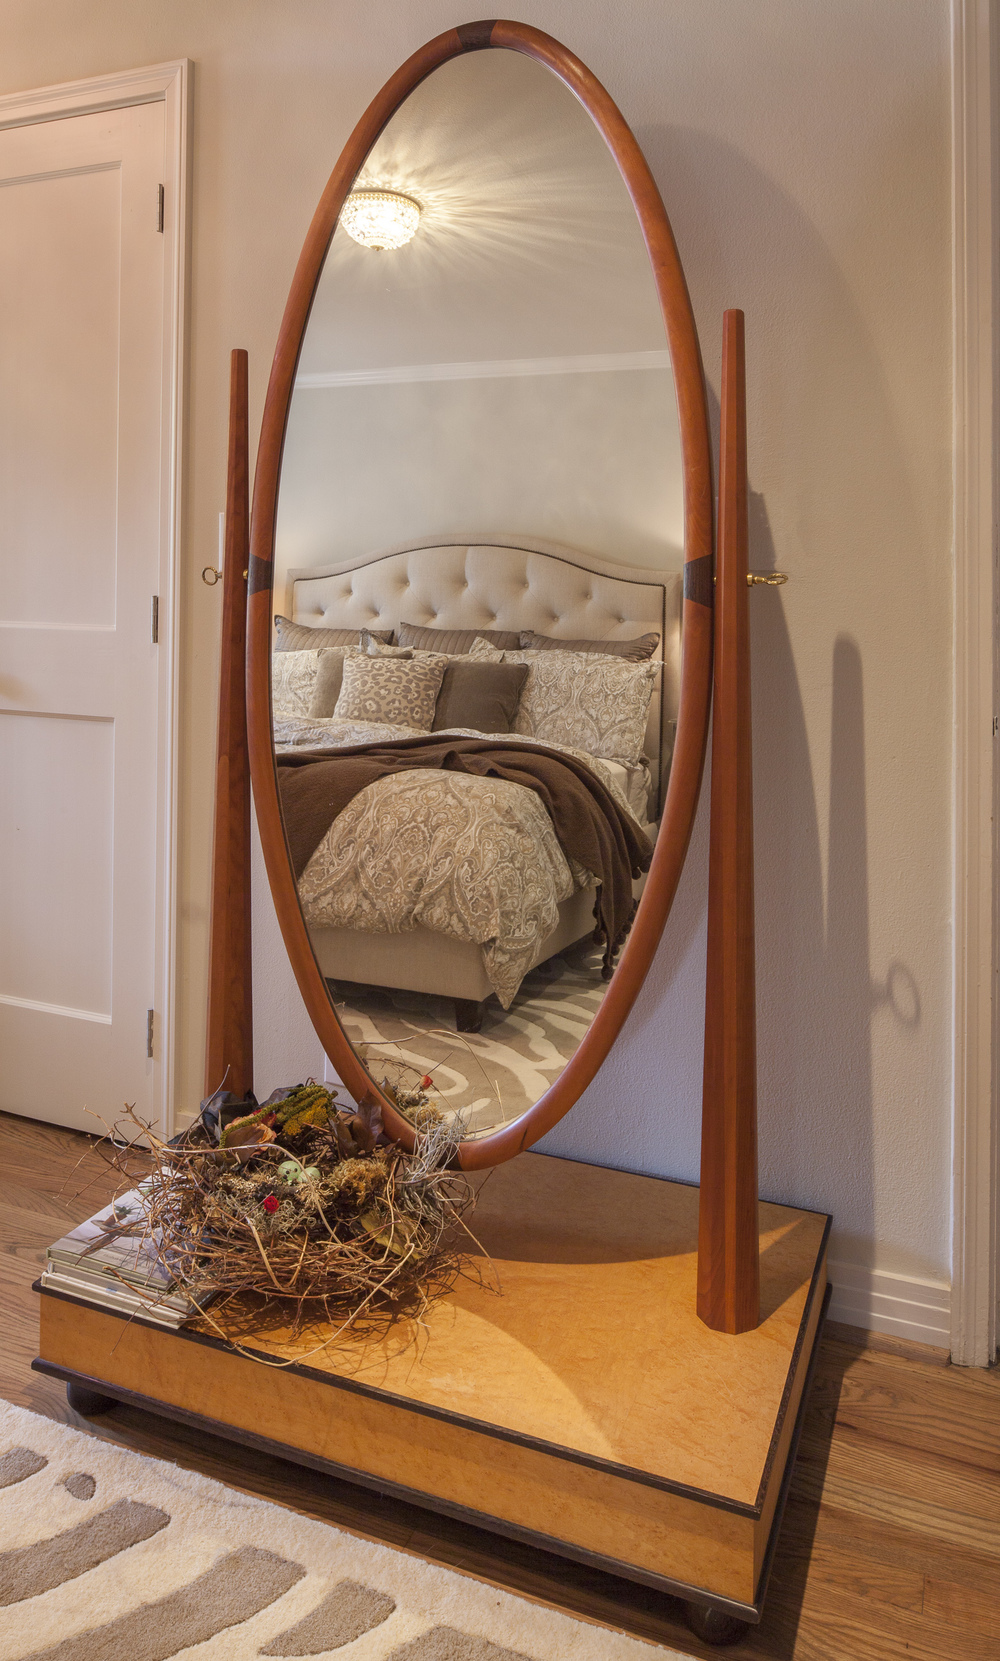 Cheval mirror of multiple woods: Base of birds-eye maple; base trim of African wenge; vertical supports of cherry and oval mirror also trimmed with cherry and an inlay of wenge. Design adapted by Michael Reznikoff/RCF.